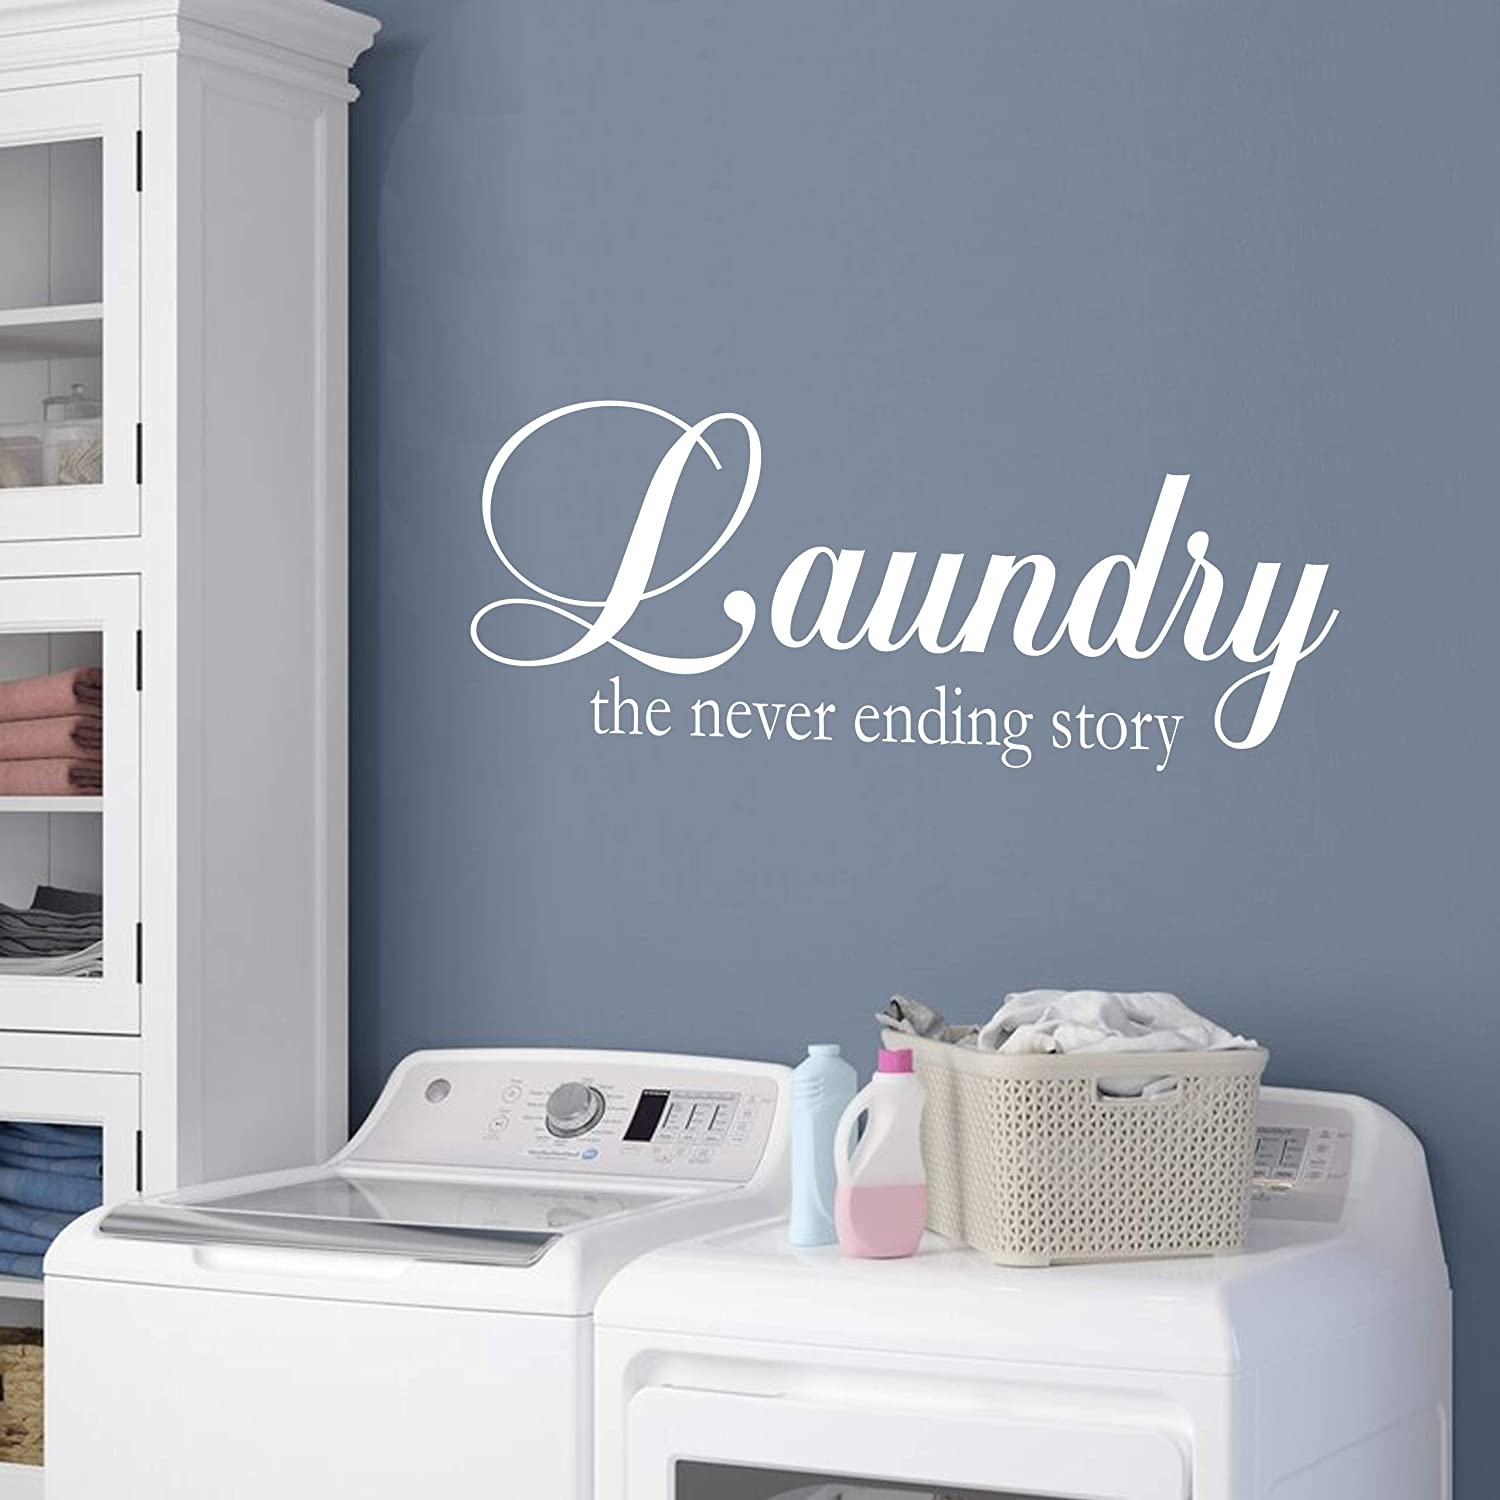 Vinyl Quote Me | Laundry Room Decal Decoration For Walls | Laundry - The Never Ending Story | 22x9 White